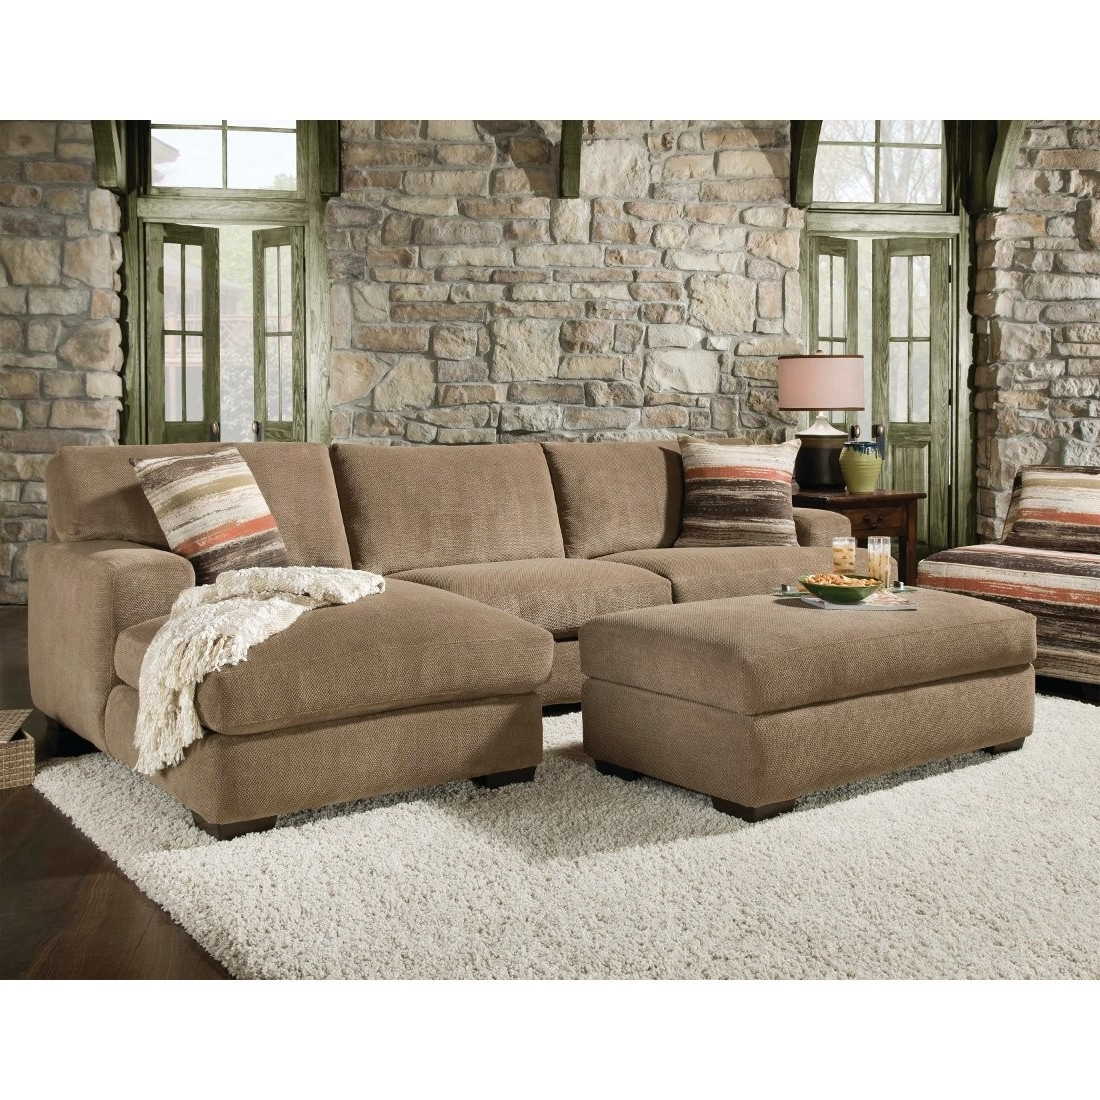 Sofa : Extra Large Sectionals With Chaise Deep Sofas Deep Couches In Best And Newest Raymour And Flanigan Sectional Sofas (View 19 of 20)